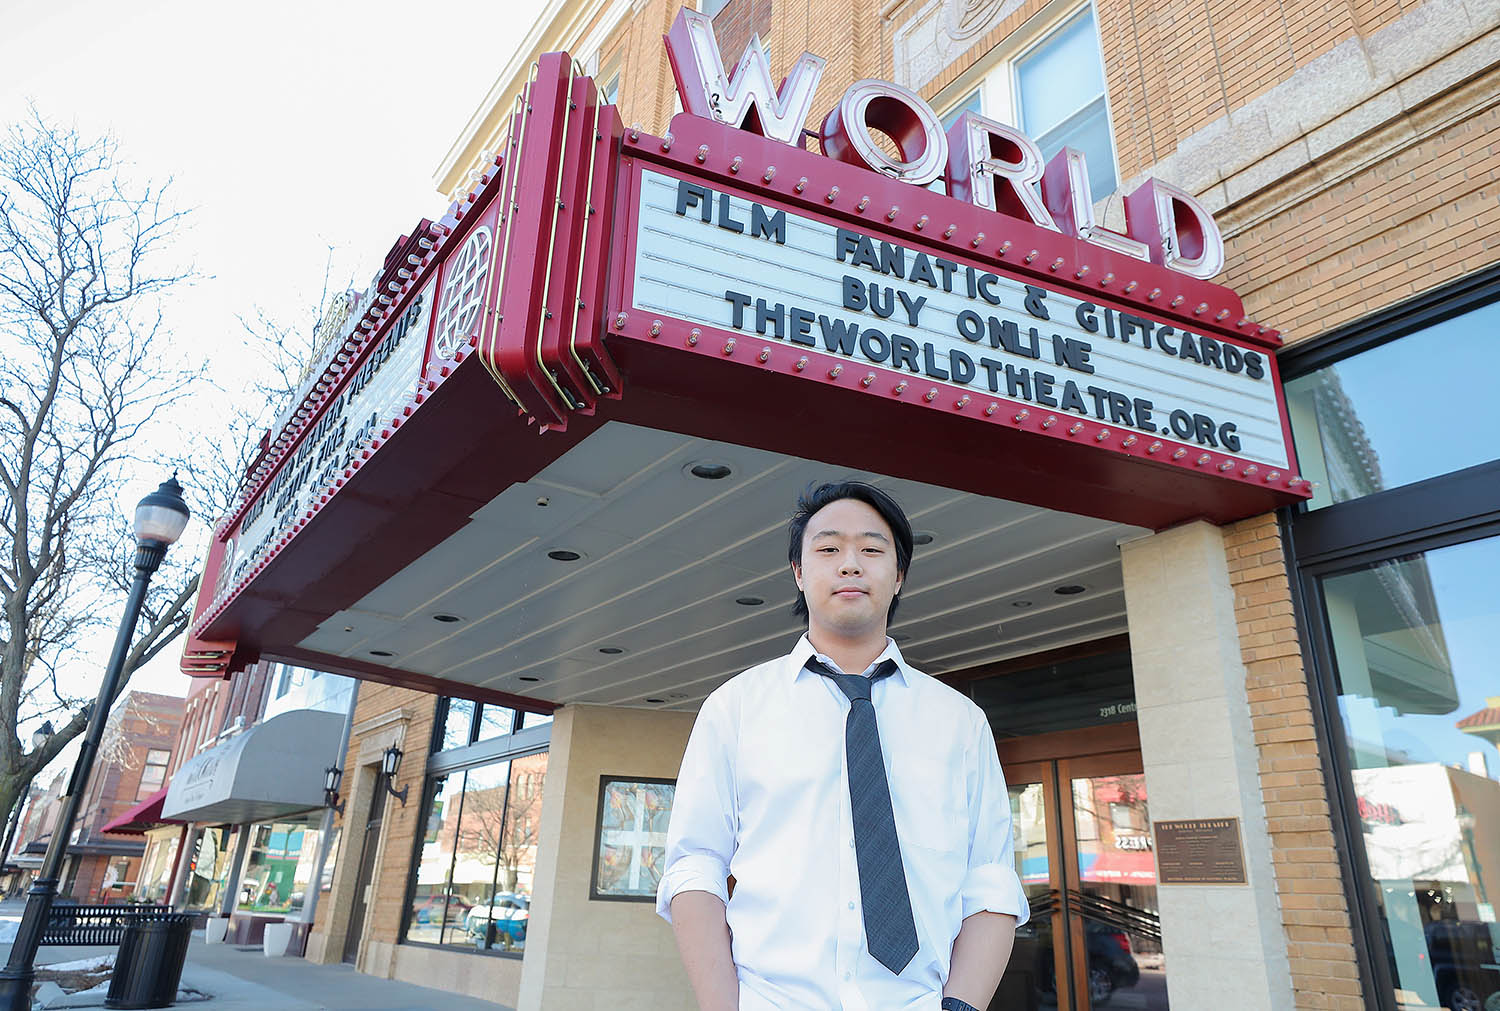 """Ryan Range's documentary, """"When The World Closed,"""" highlights The World Theatre's impact on Kearney and the community effort that helped the historic movie house get through the COVID-19 pandemic. (Photo by Erika Pritchard, UNK Communications)"""